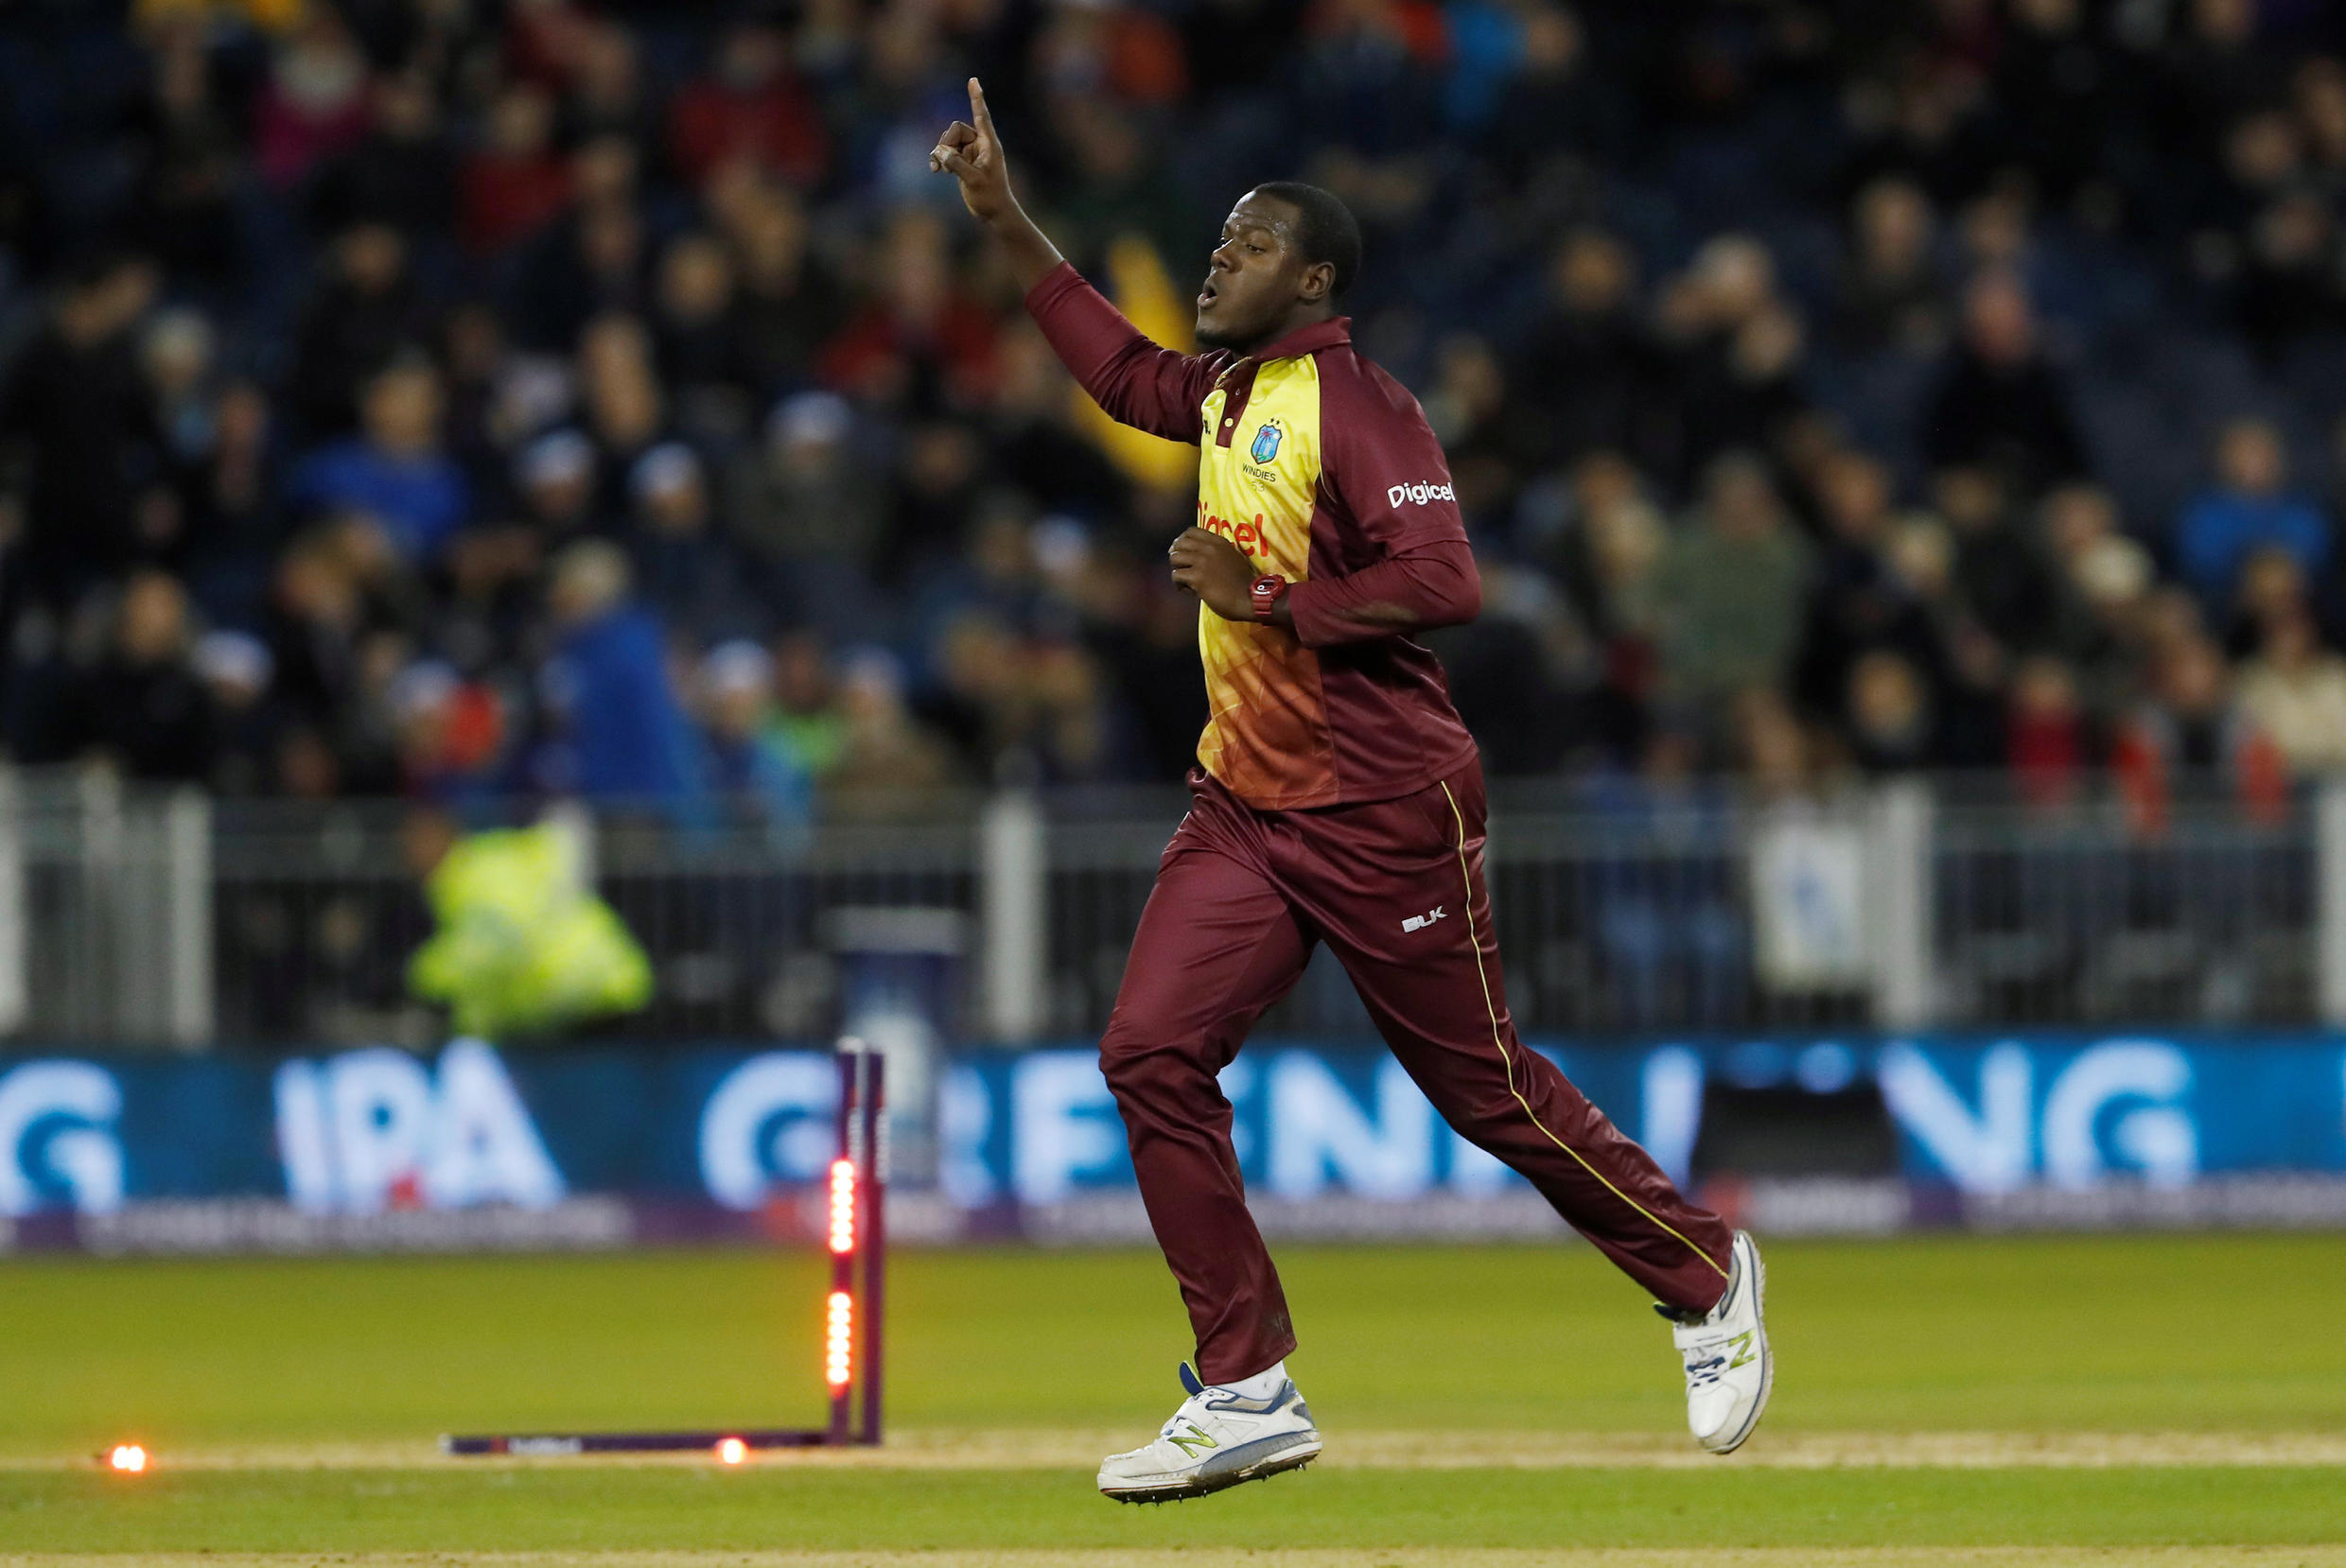 West Indies captain Carlos Braithwaite said his players feared injury in the outfield at Chester-le-Street.